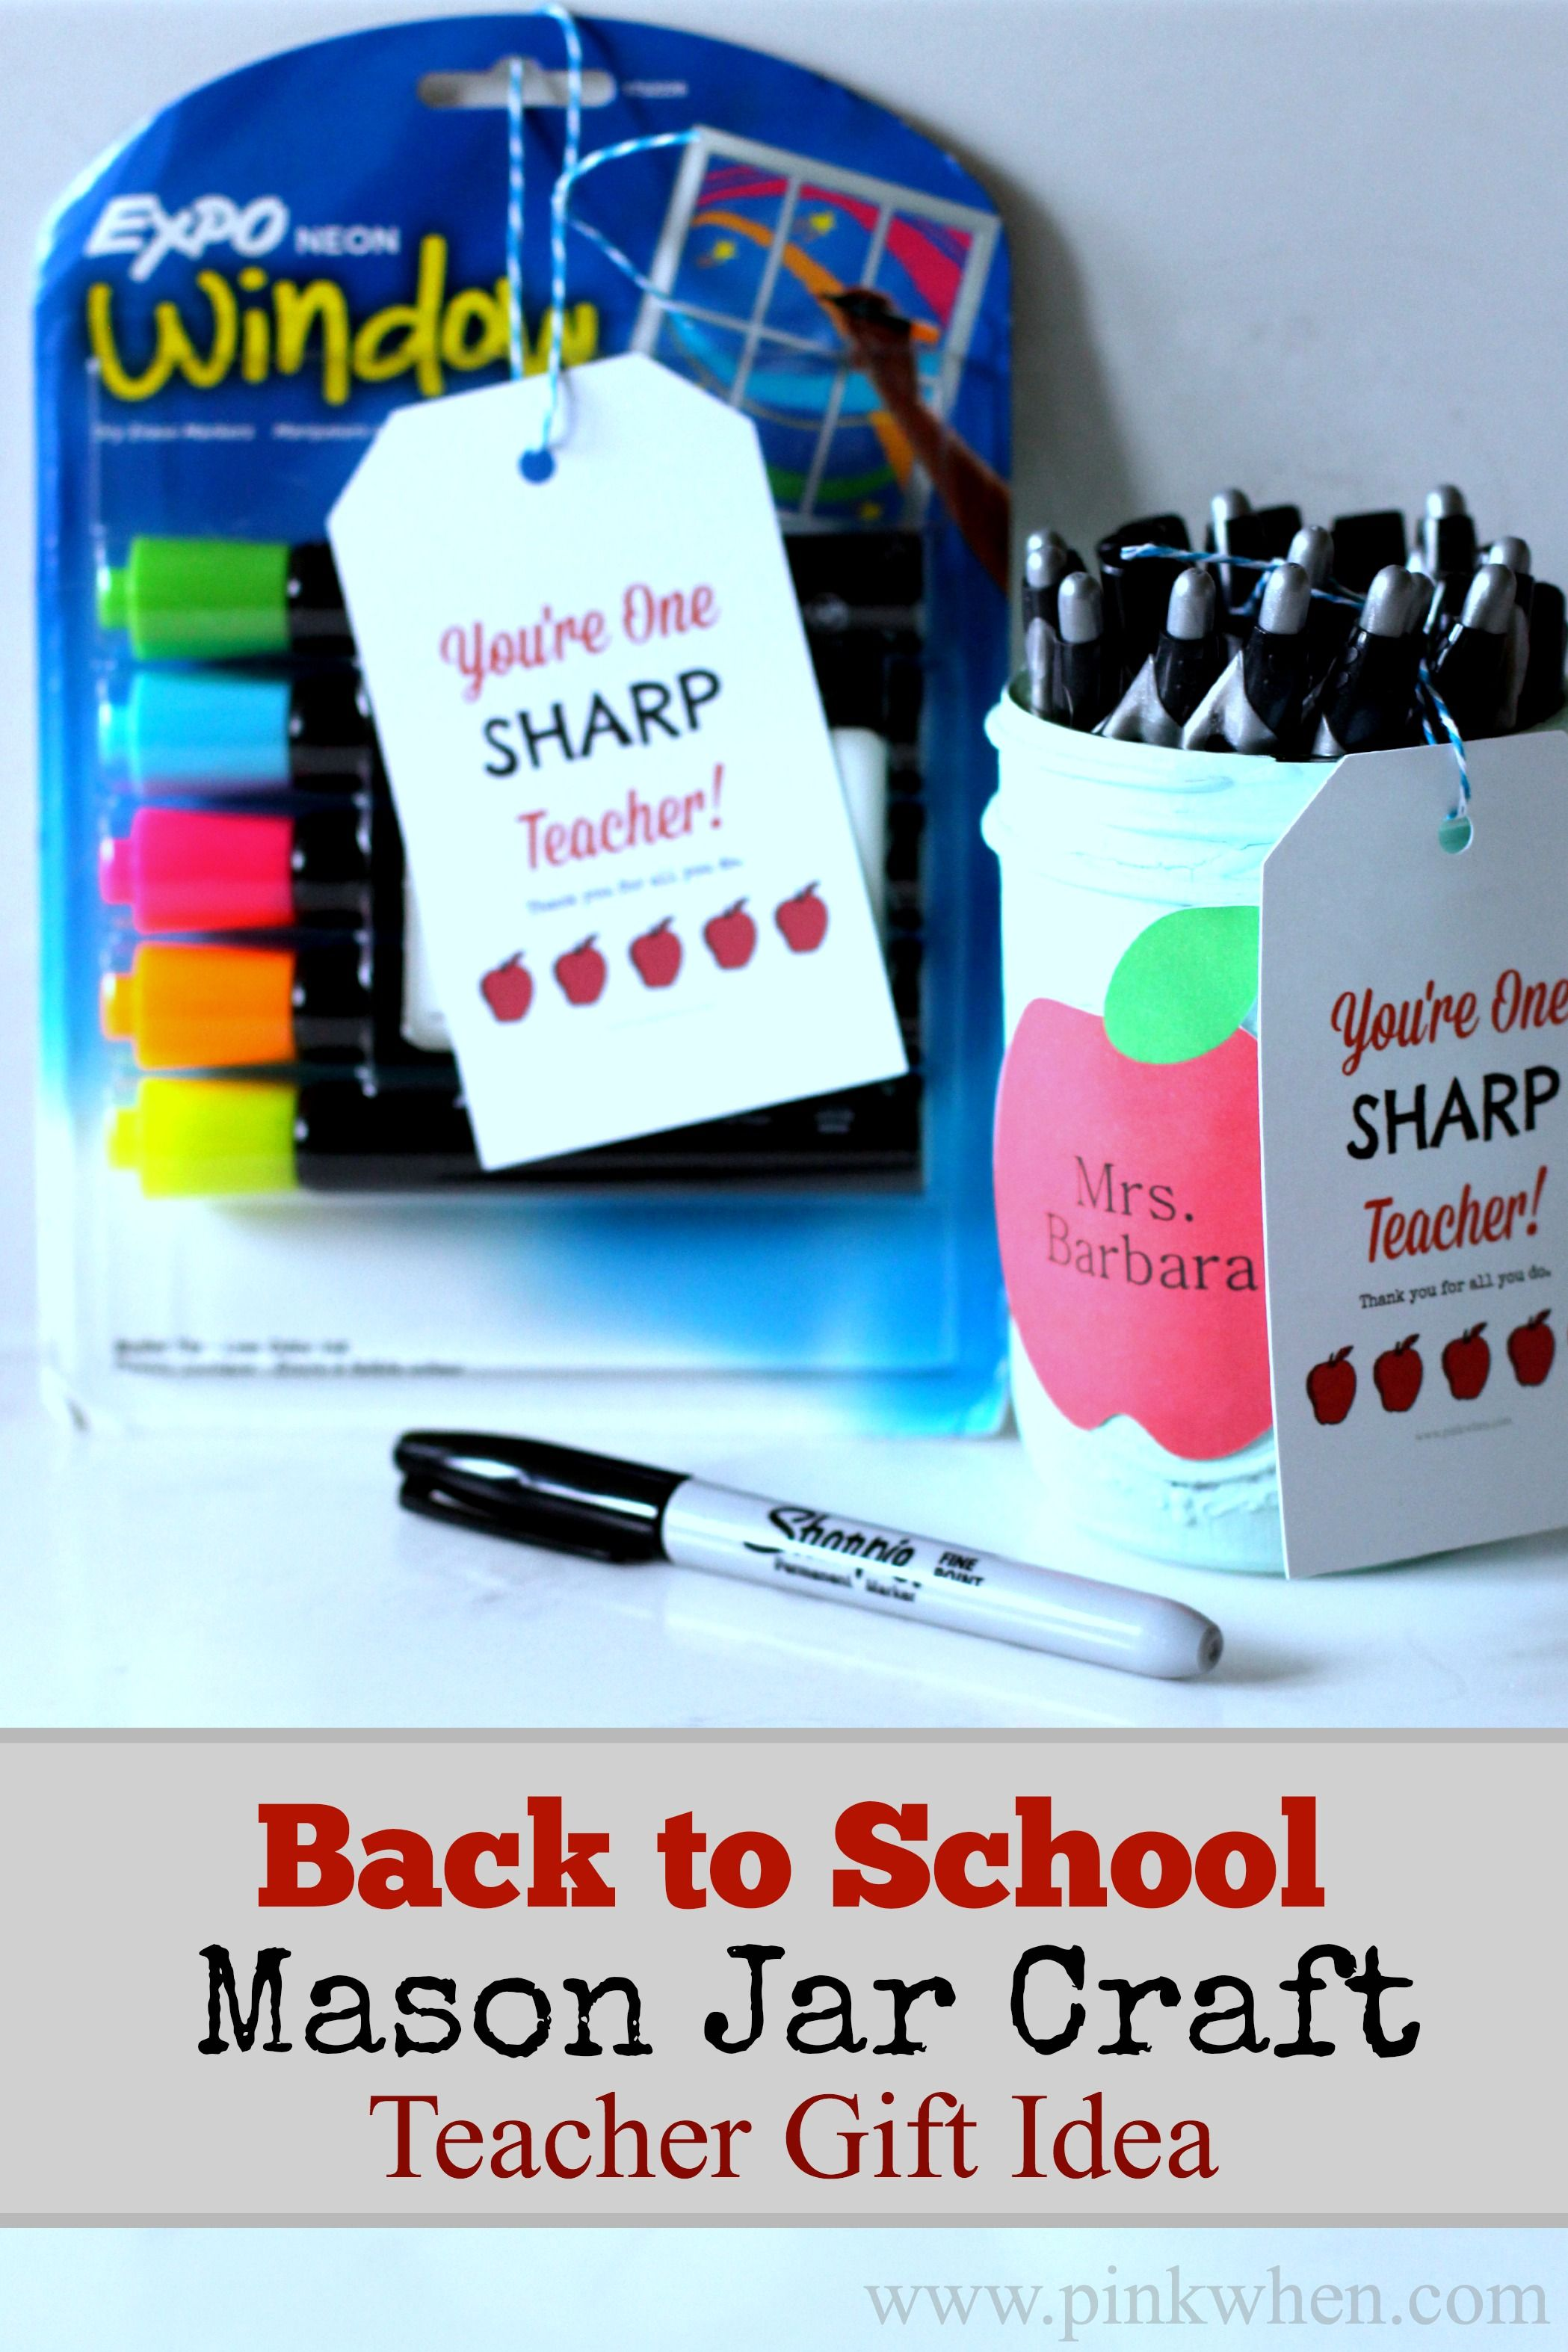 Back to School Mason Jar Craft #eceappreciationgiftideas